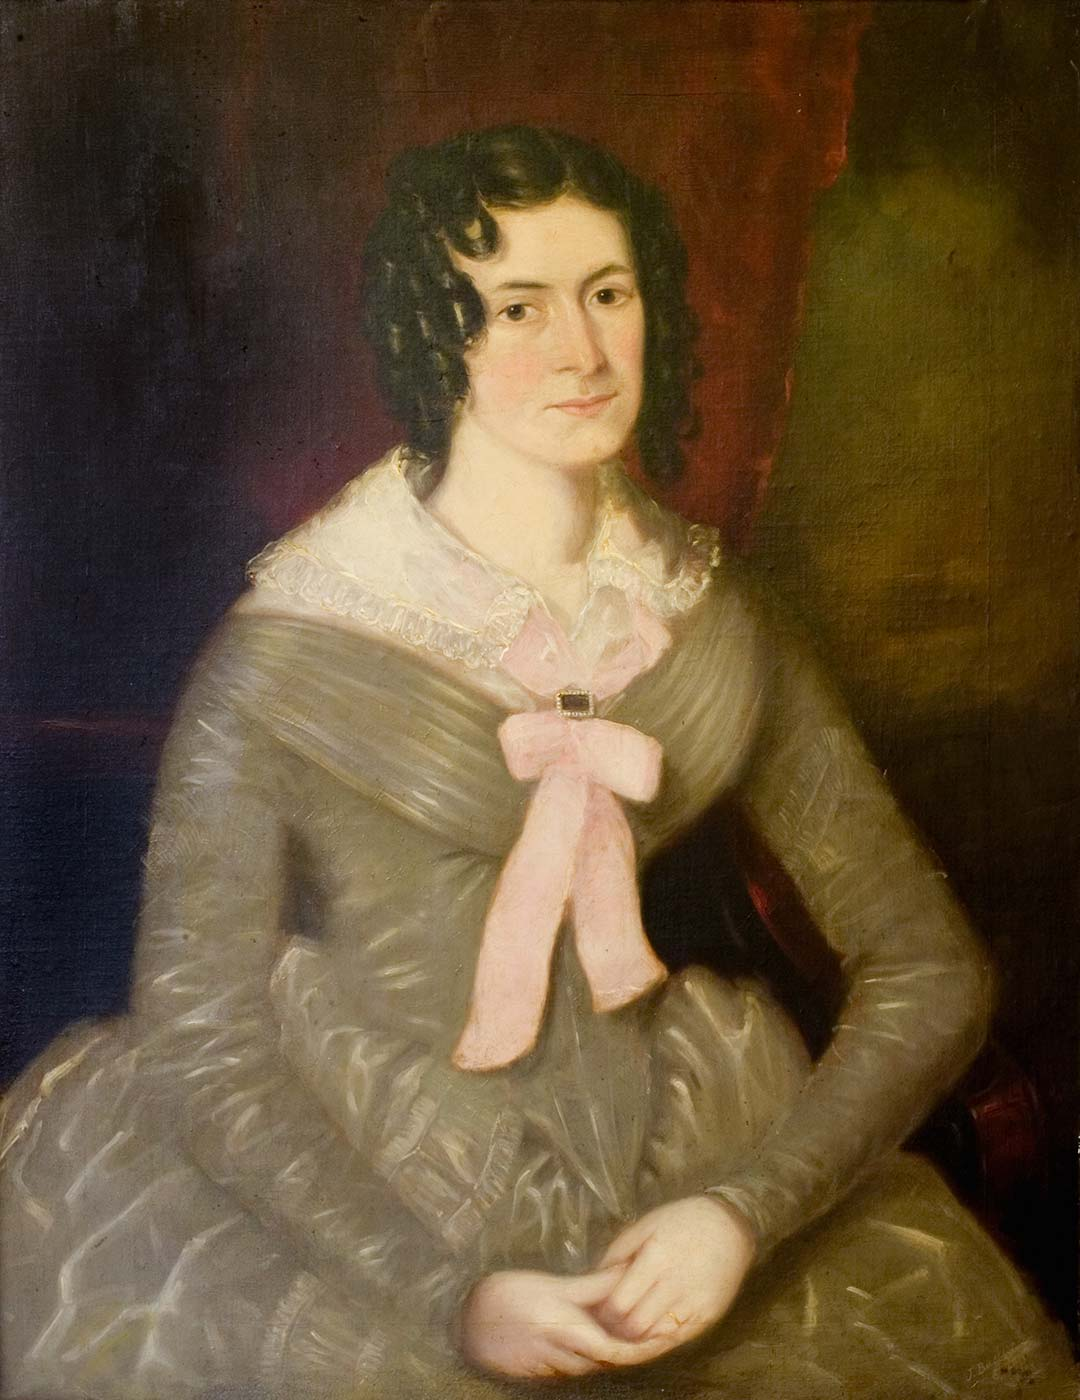 Portrait of a lady in 1845 seated with her hands folded together in her lap, with ringlets around her face wearing an olive-coloured dress with full skirt, tight waist and lace collar tied with pink bow and clasp at the front. - click to view larger image